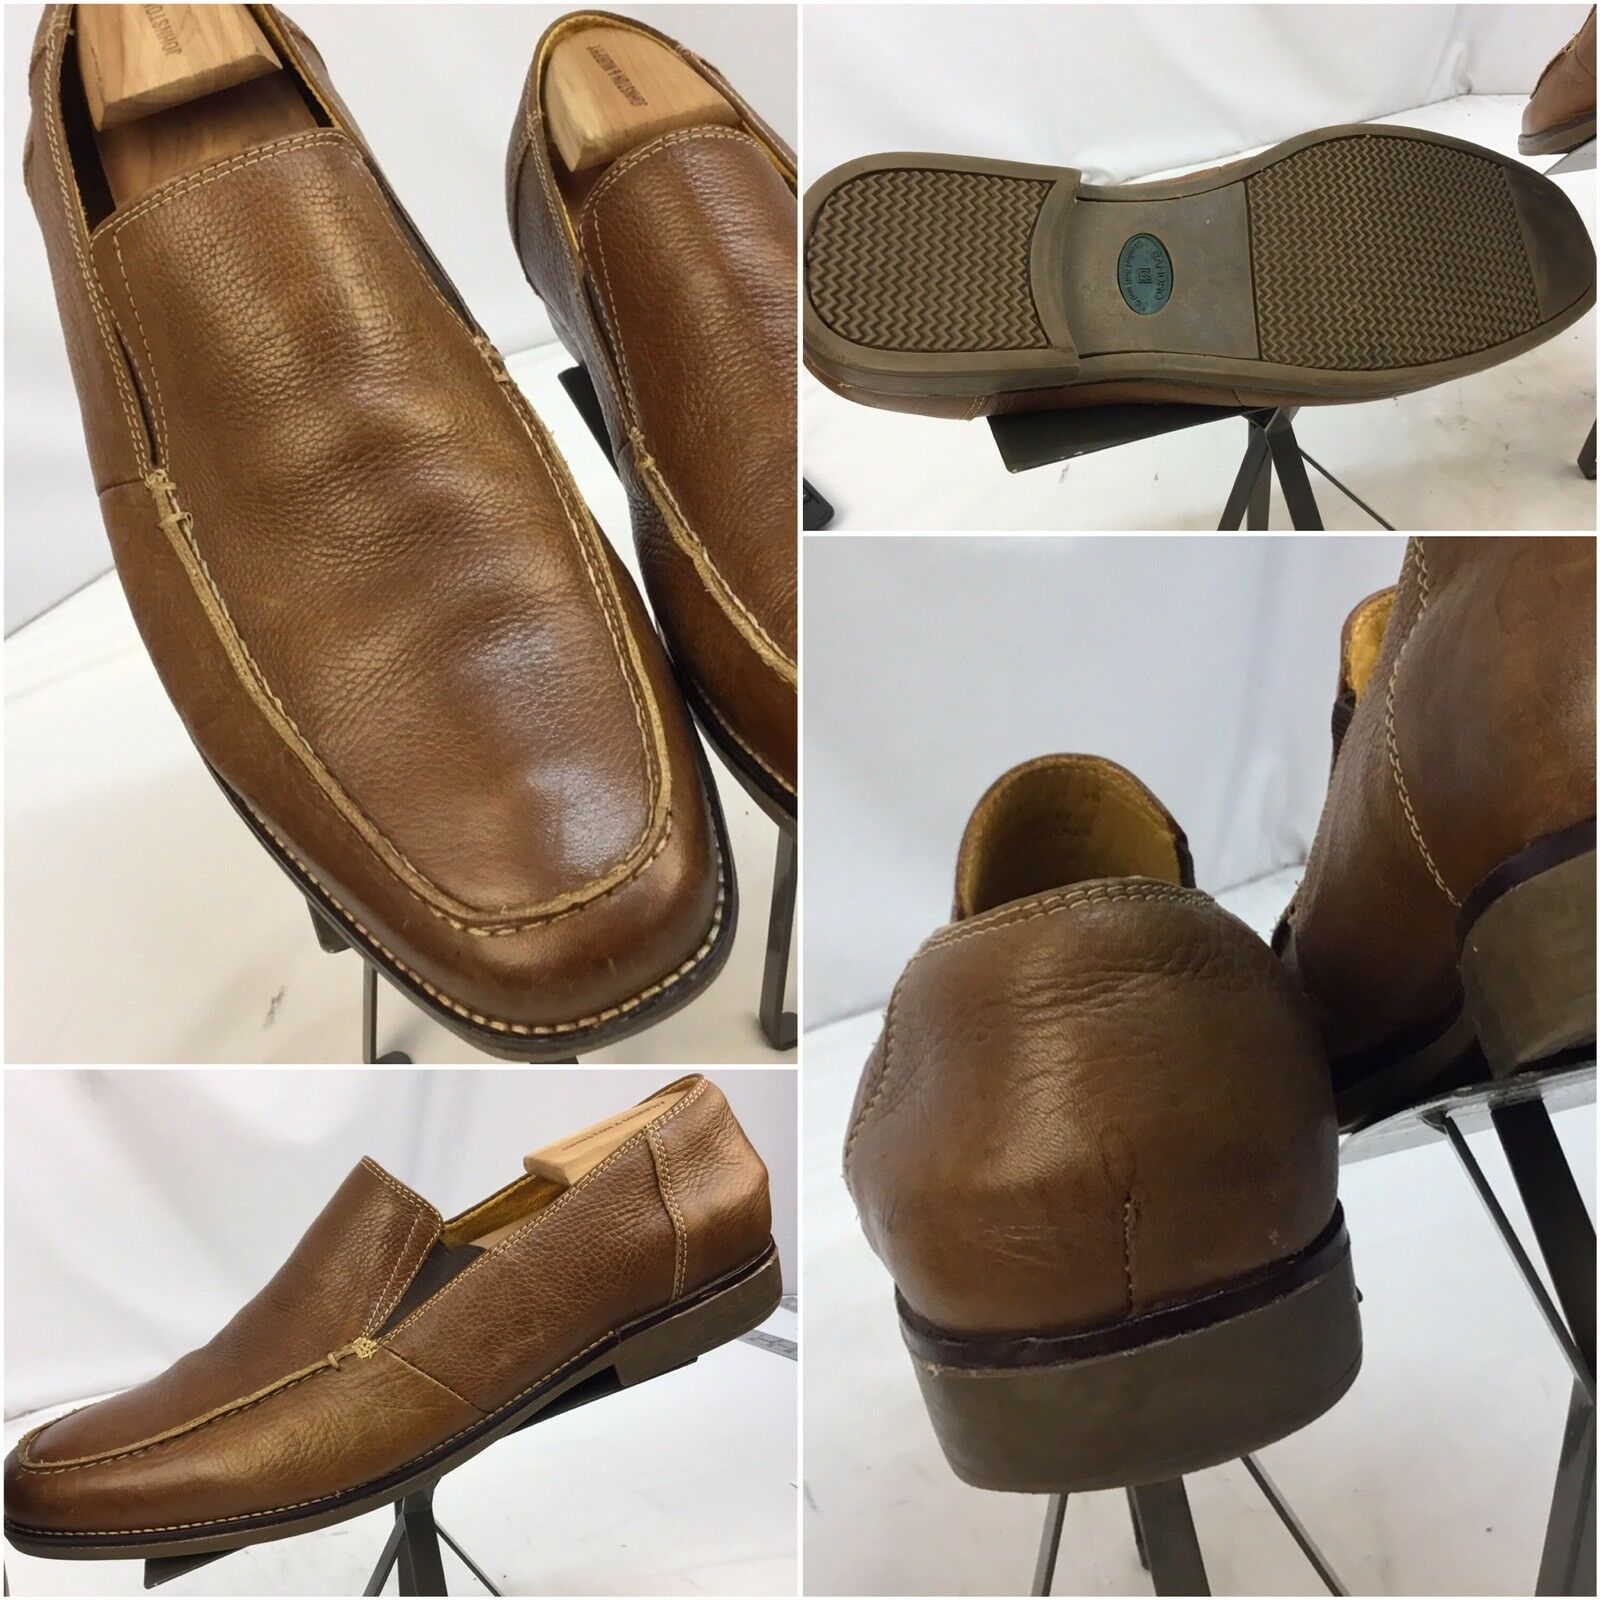 Sandro Moscolini Loafers Shoes Sz 13D Brown Pelle Made Brazil Mint YGI I7